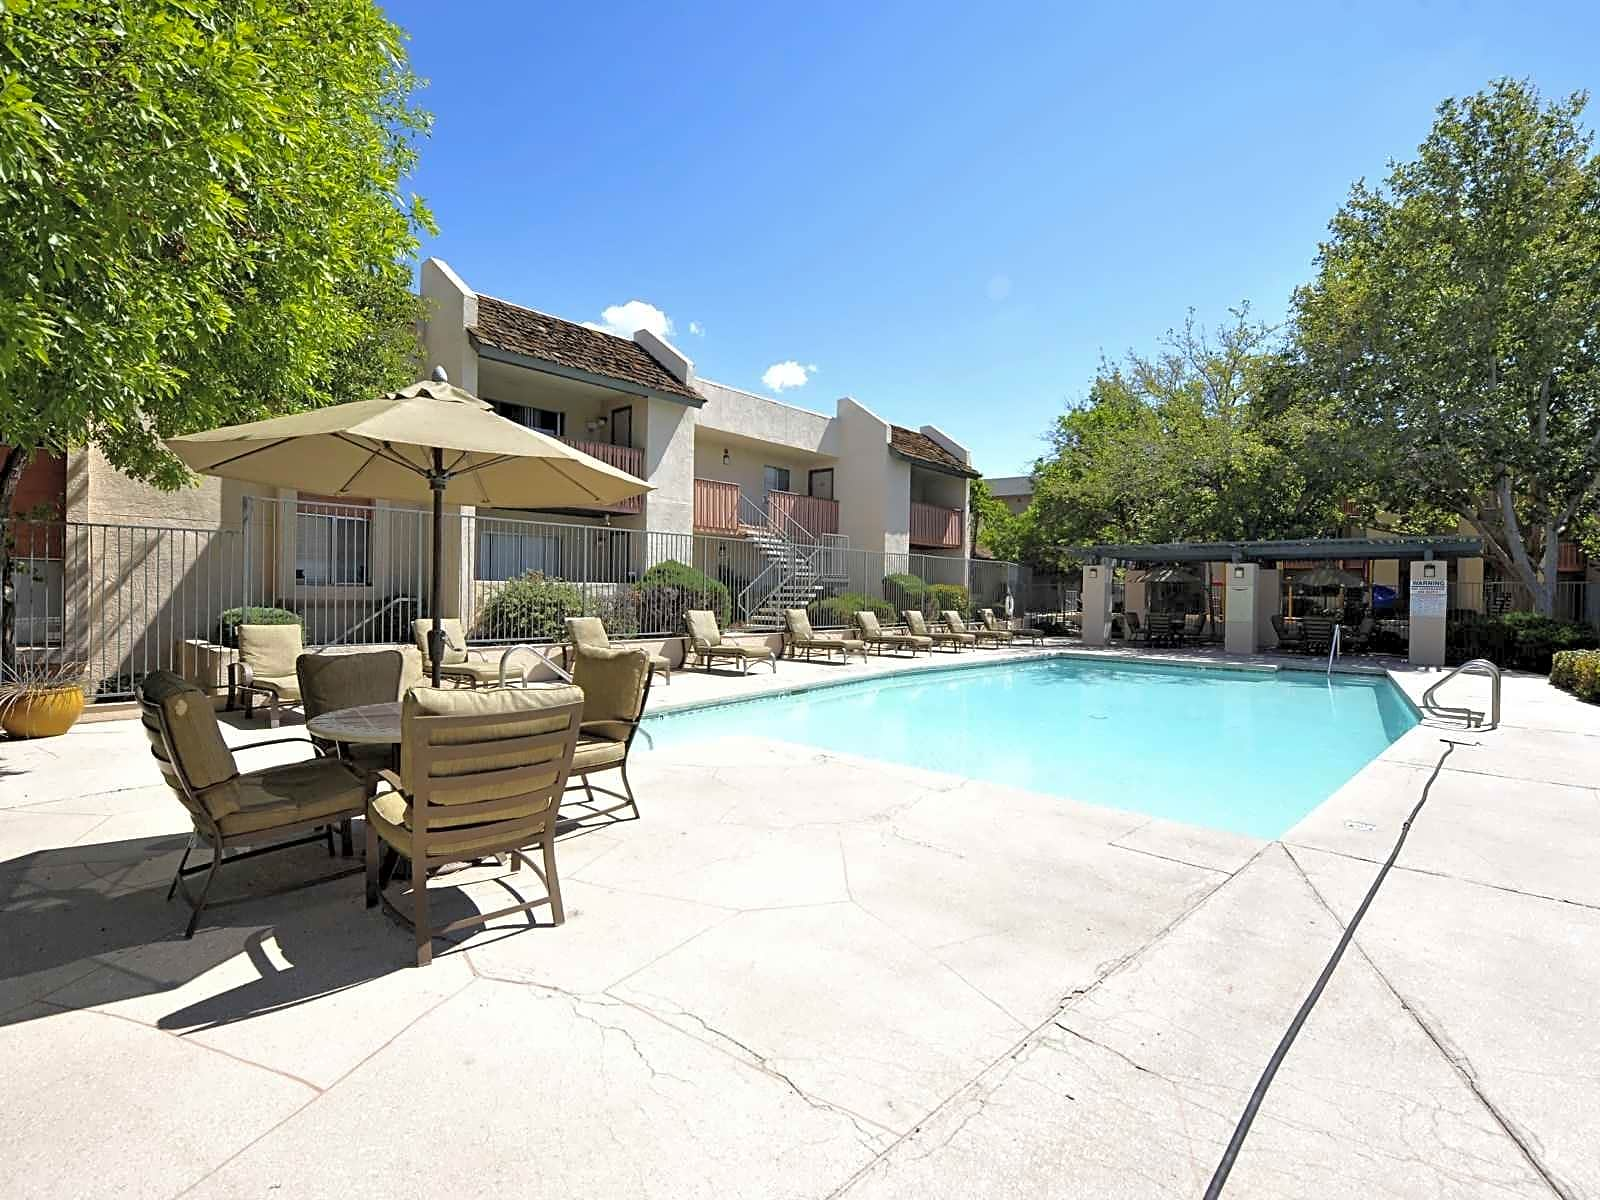 Photo: Albuquerque Apartment for Rent - $565.00 / month; 1 Bd & 1 Ba